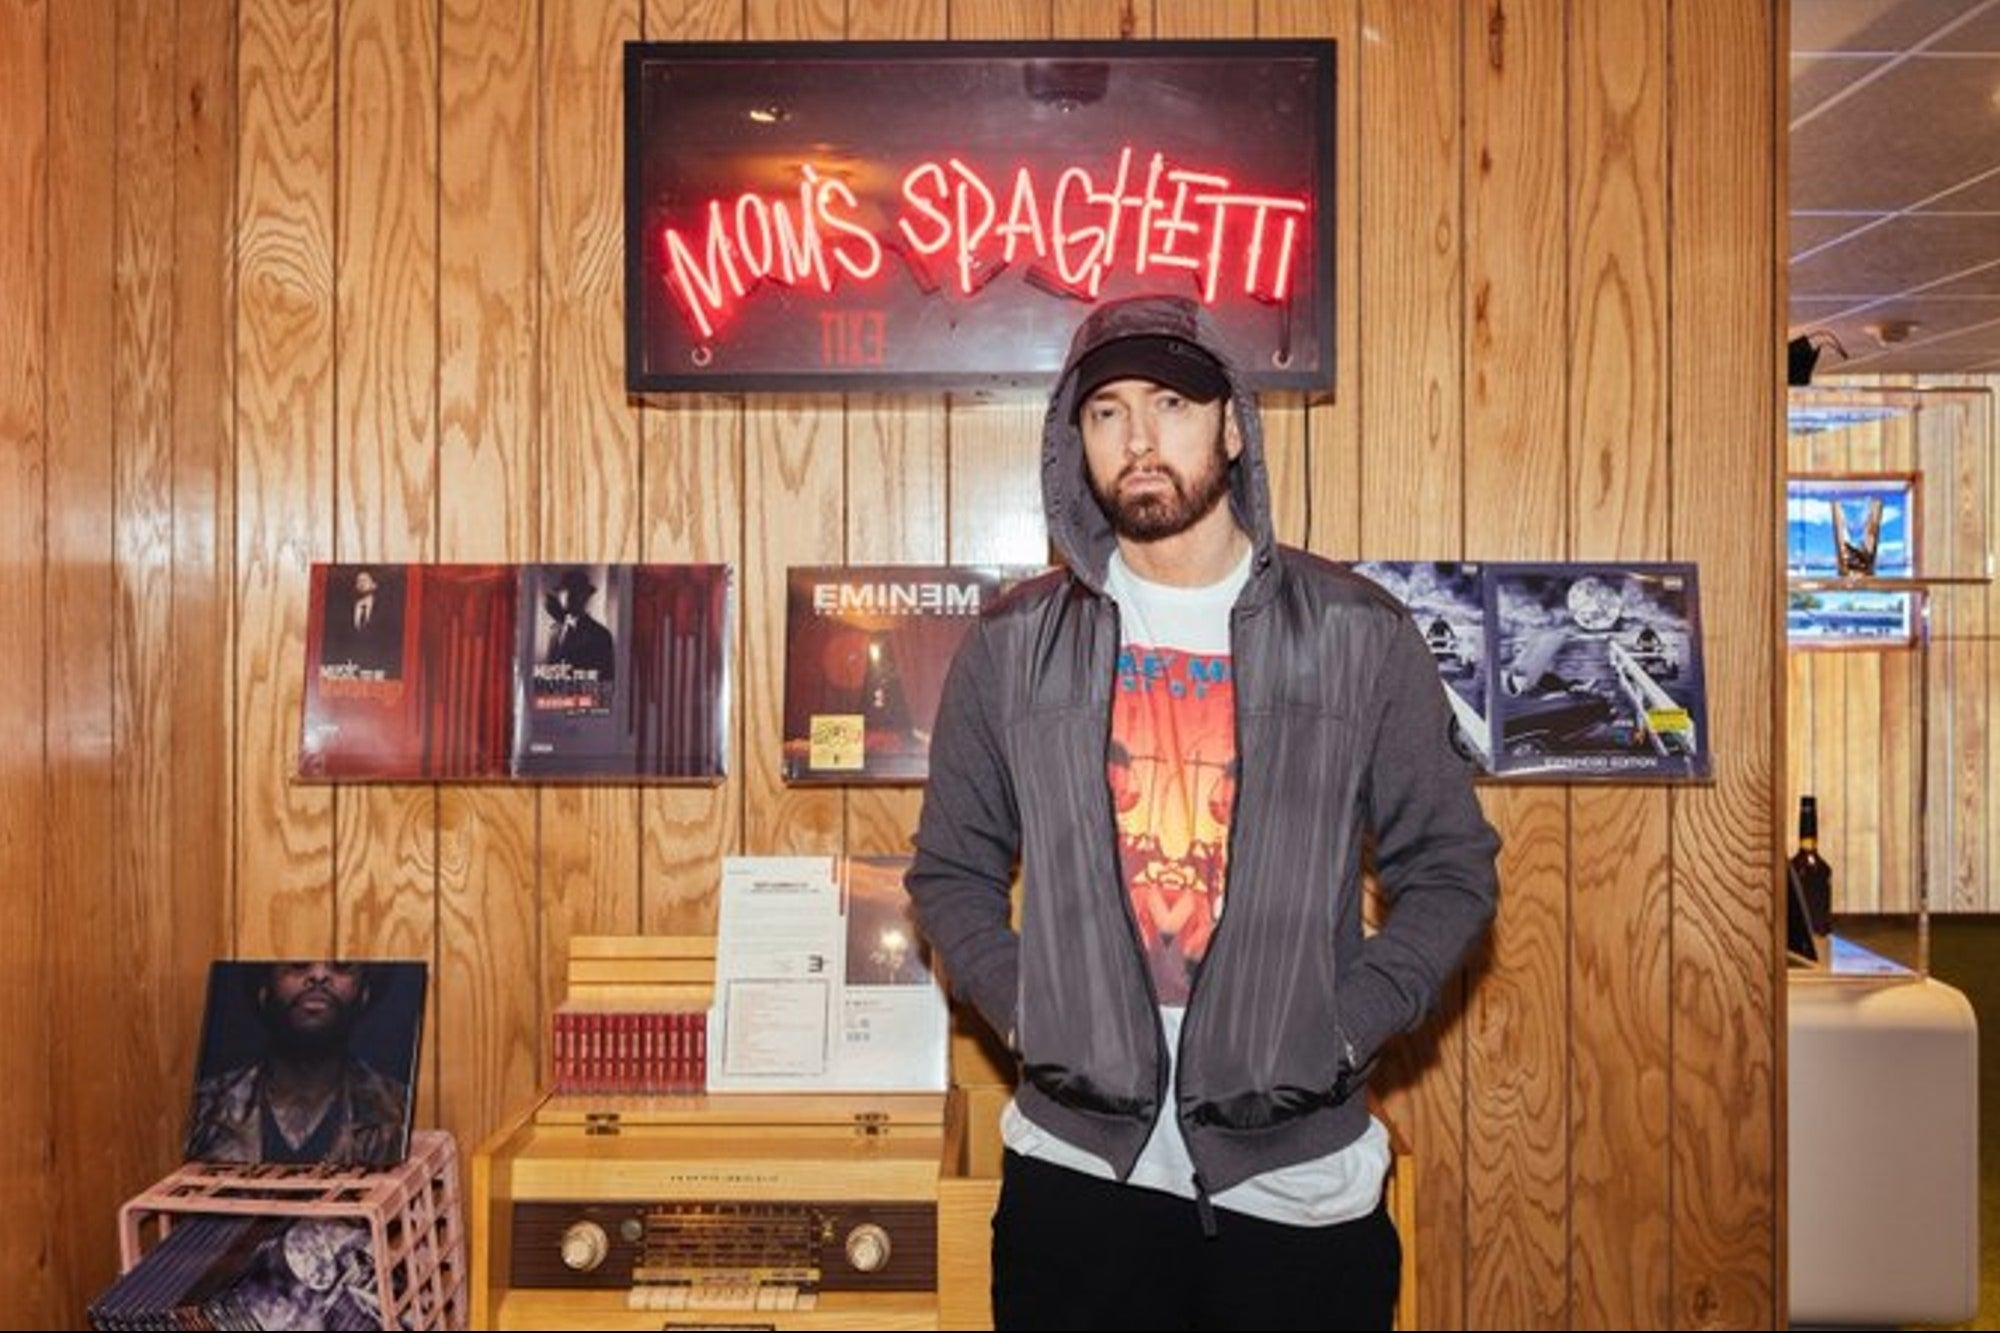 Guess who's back? Eminem went from rapper to entrepreneur and waiter at his own pasta restaurant